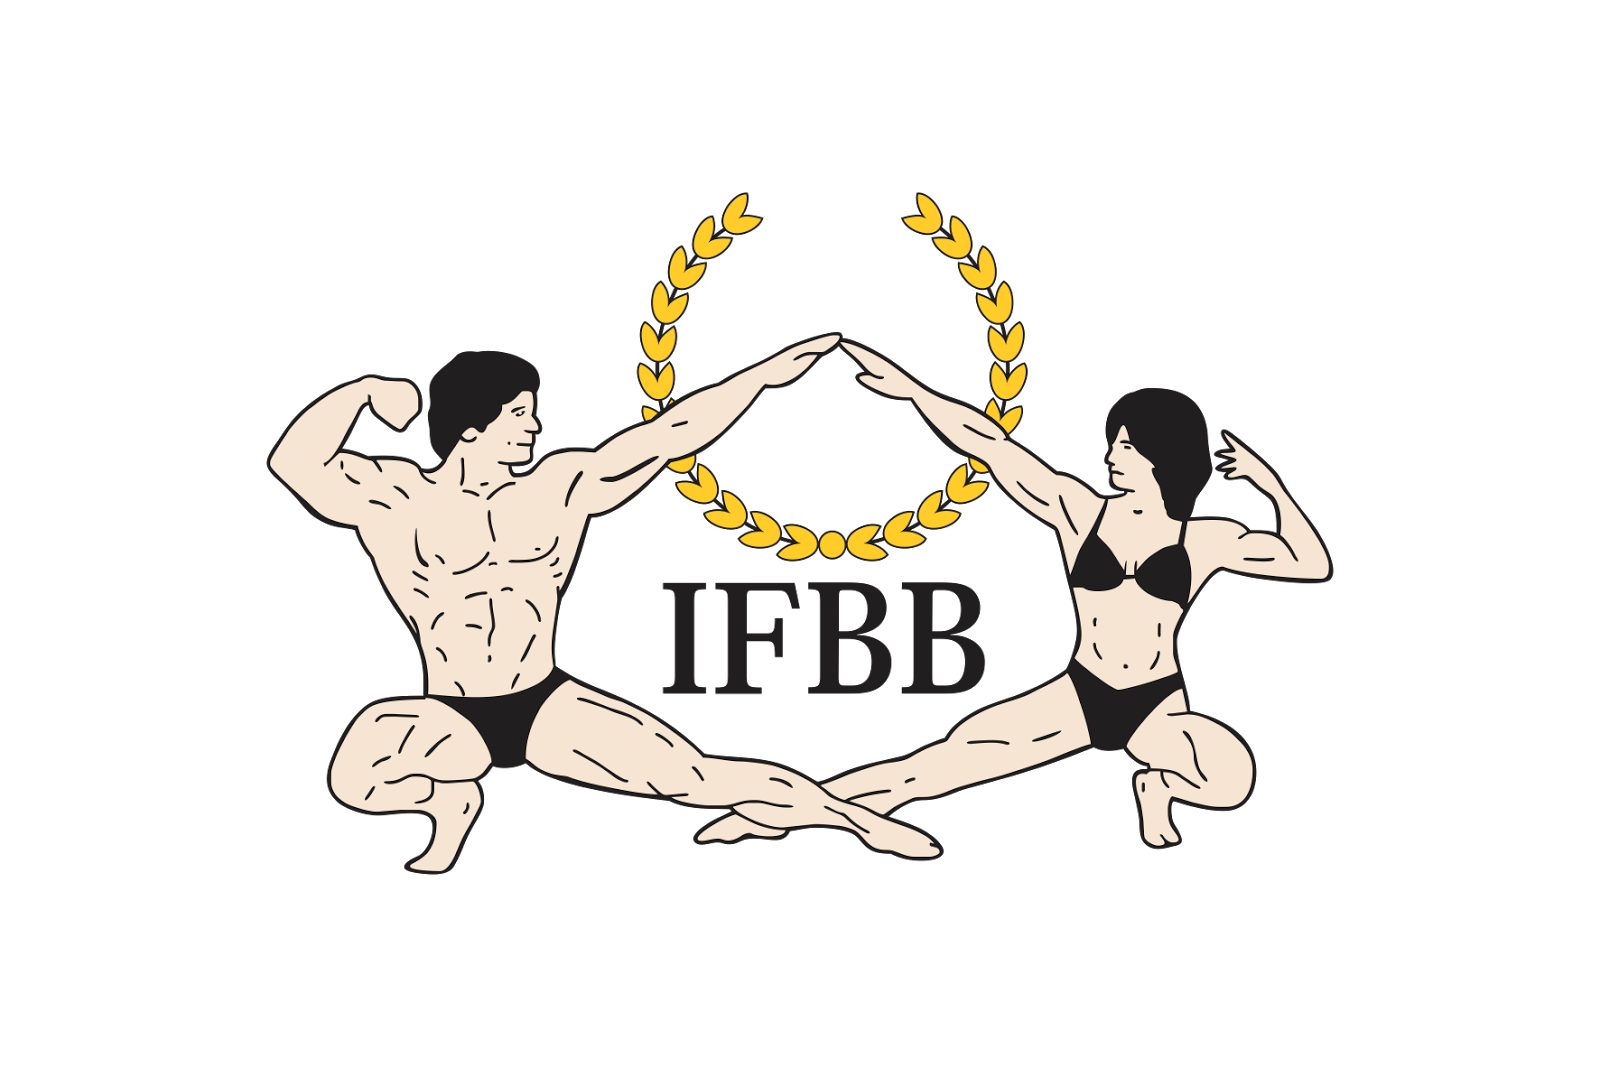 Fitness Logo Vector Png International Federation Of Bodybuilding And Fitness Logo